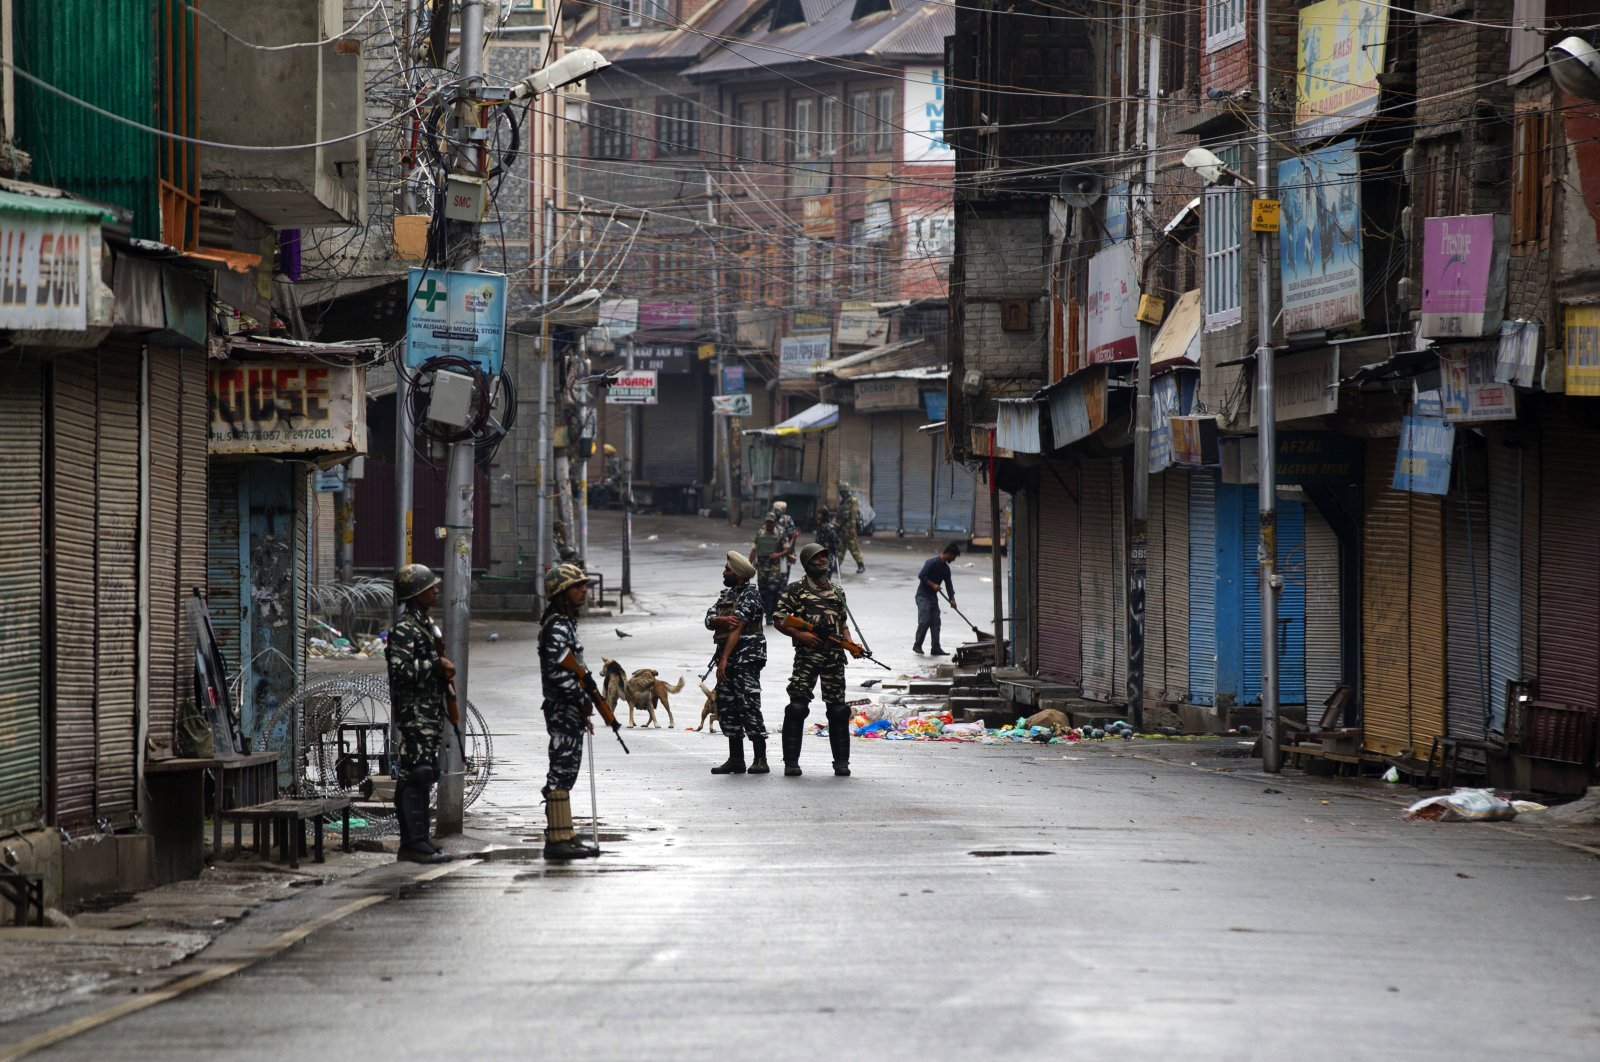 Indian soldiers stand guard on a deserted street during curfew, Srinagar, Jammu and Kashmir, Aug. 8, 2019. (AP Photo)